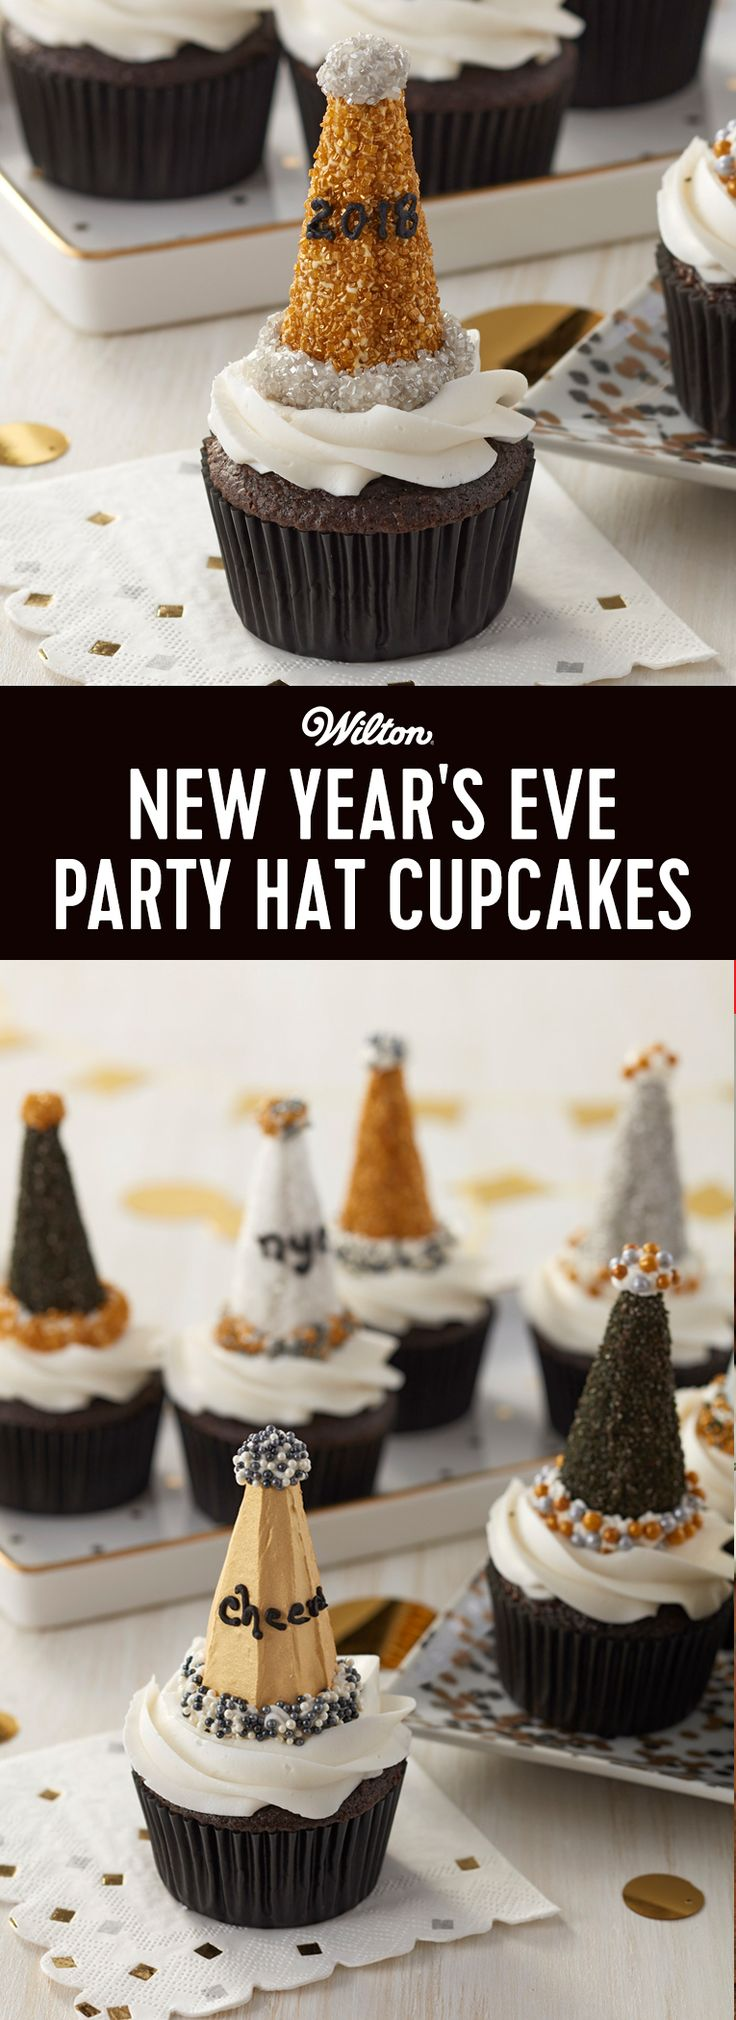 "Ring in the New Year with these adorable New Year's Eve Party Hat Cupcakes! Made using sugar cones and a variety of sprinkles, these cute party hats also feature fun New Year's Eve messages like ""Cheers"" and ""NYE"". Use these cute party hats to top your favorite cupcake recipe and you've got a sweet way to start the new year right! #newyear #newyearseve #wiltoncakes"